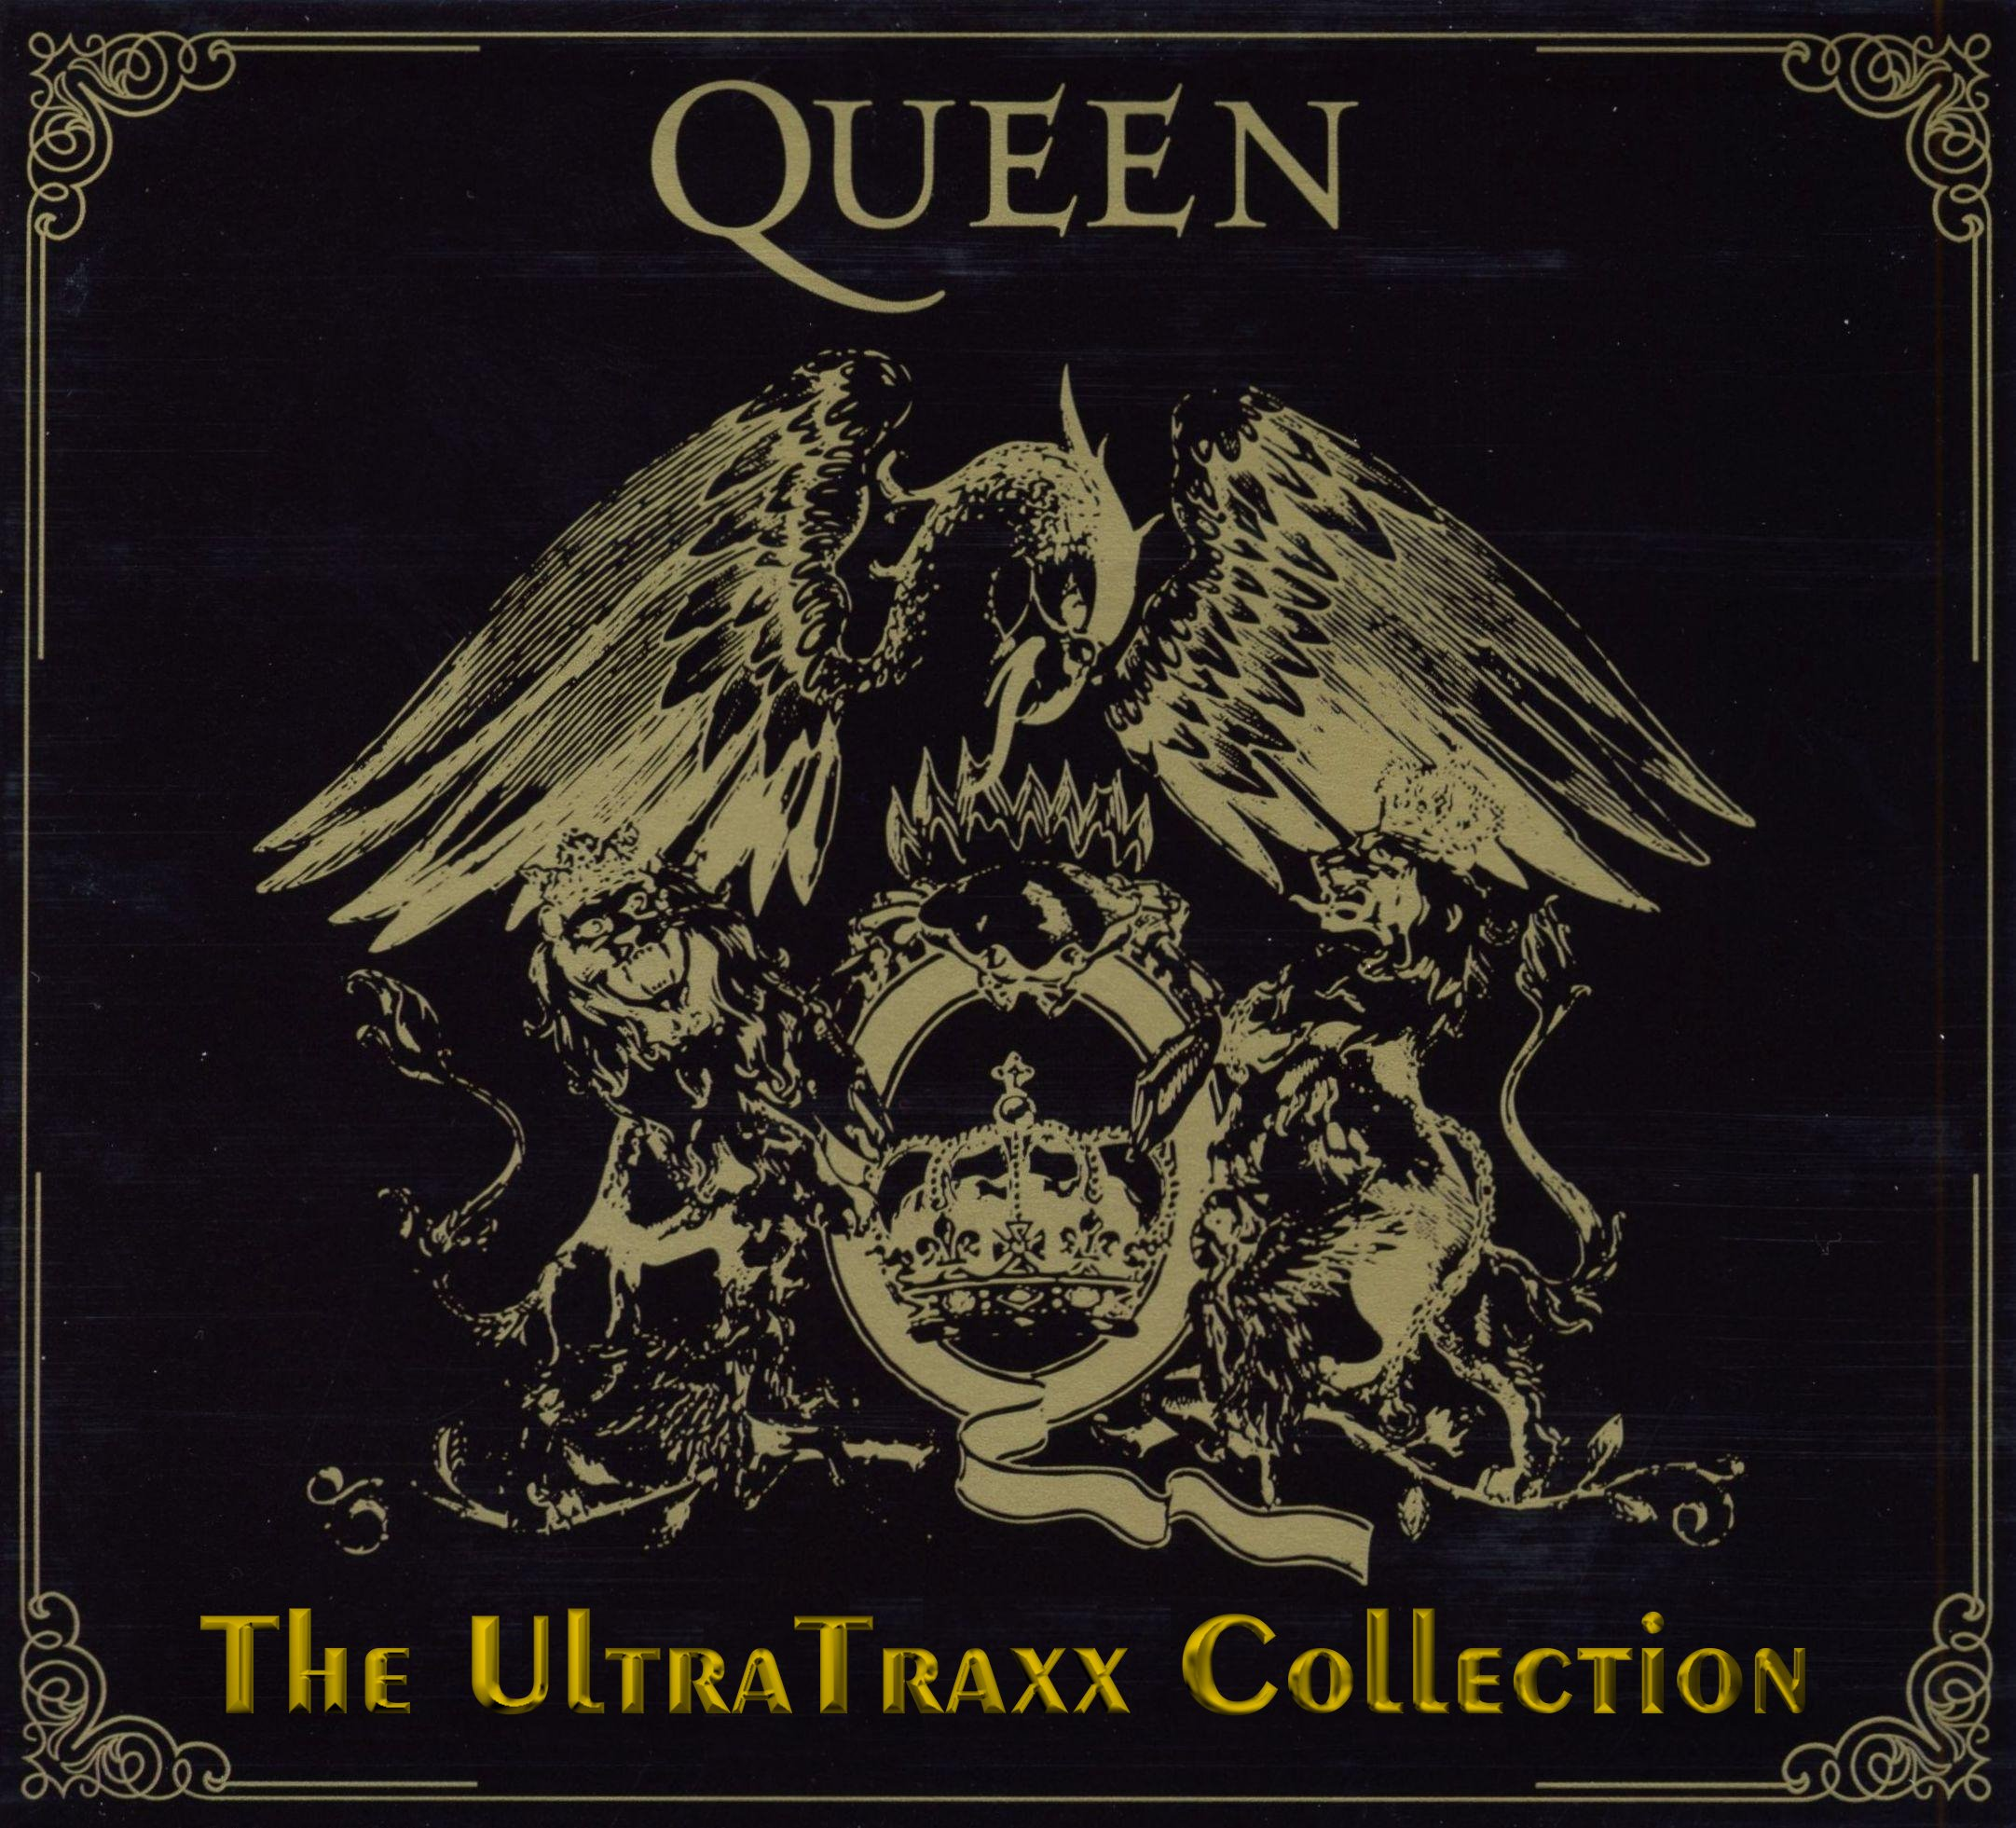 Queen - Freddie Mercury - The UltraTrax Mixes: BACKUP CD